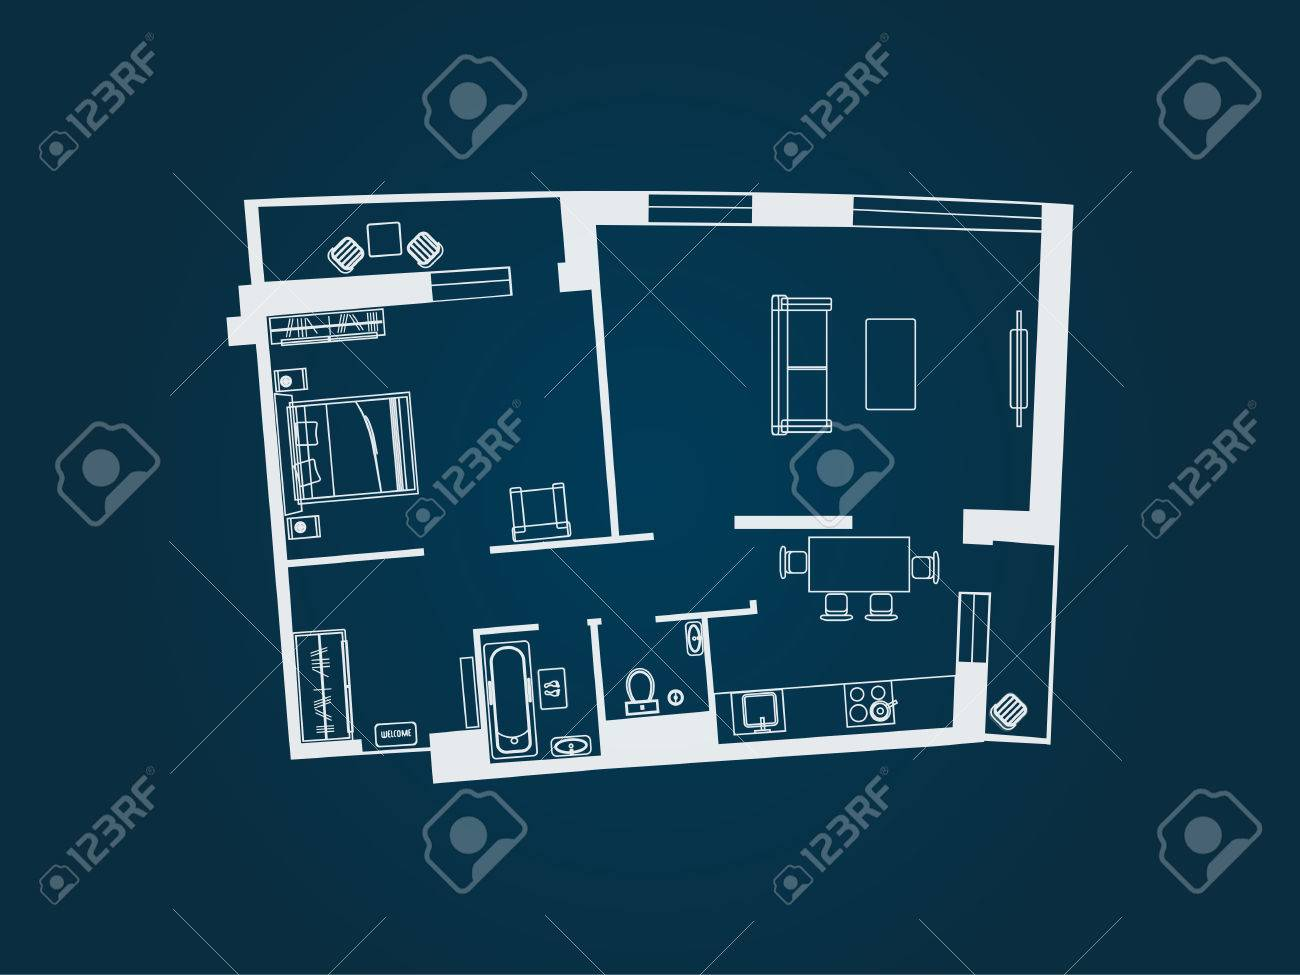 Drawing Of The Layout Apartment With Furniture Kitchen Living Room Bedroom